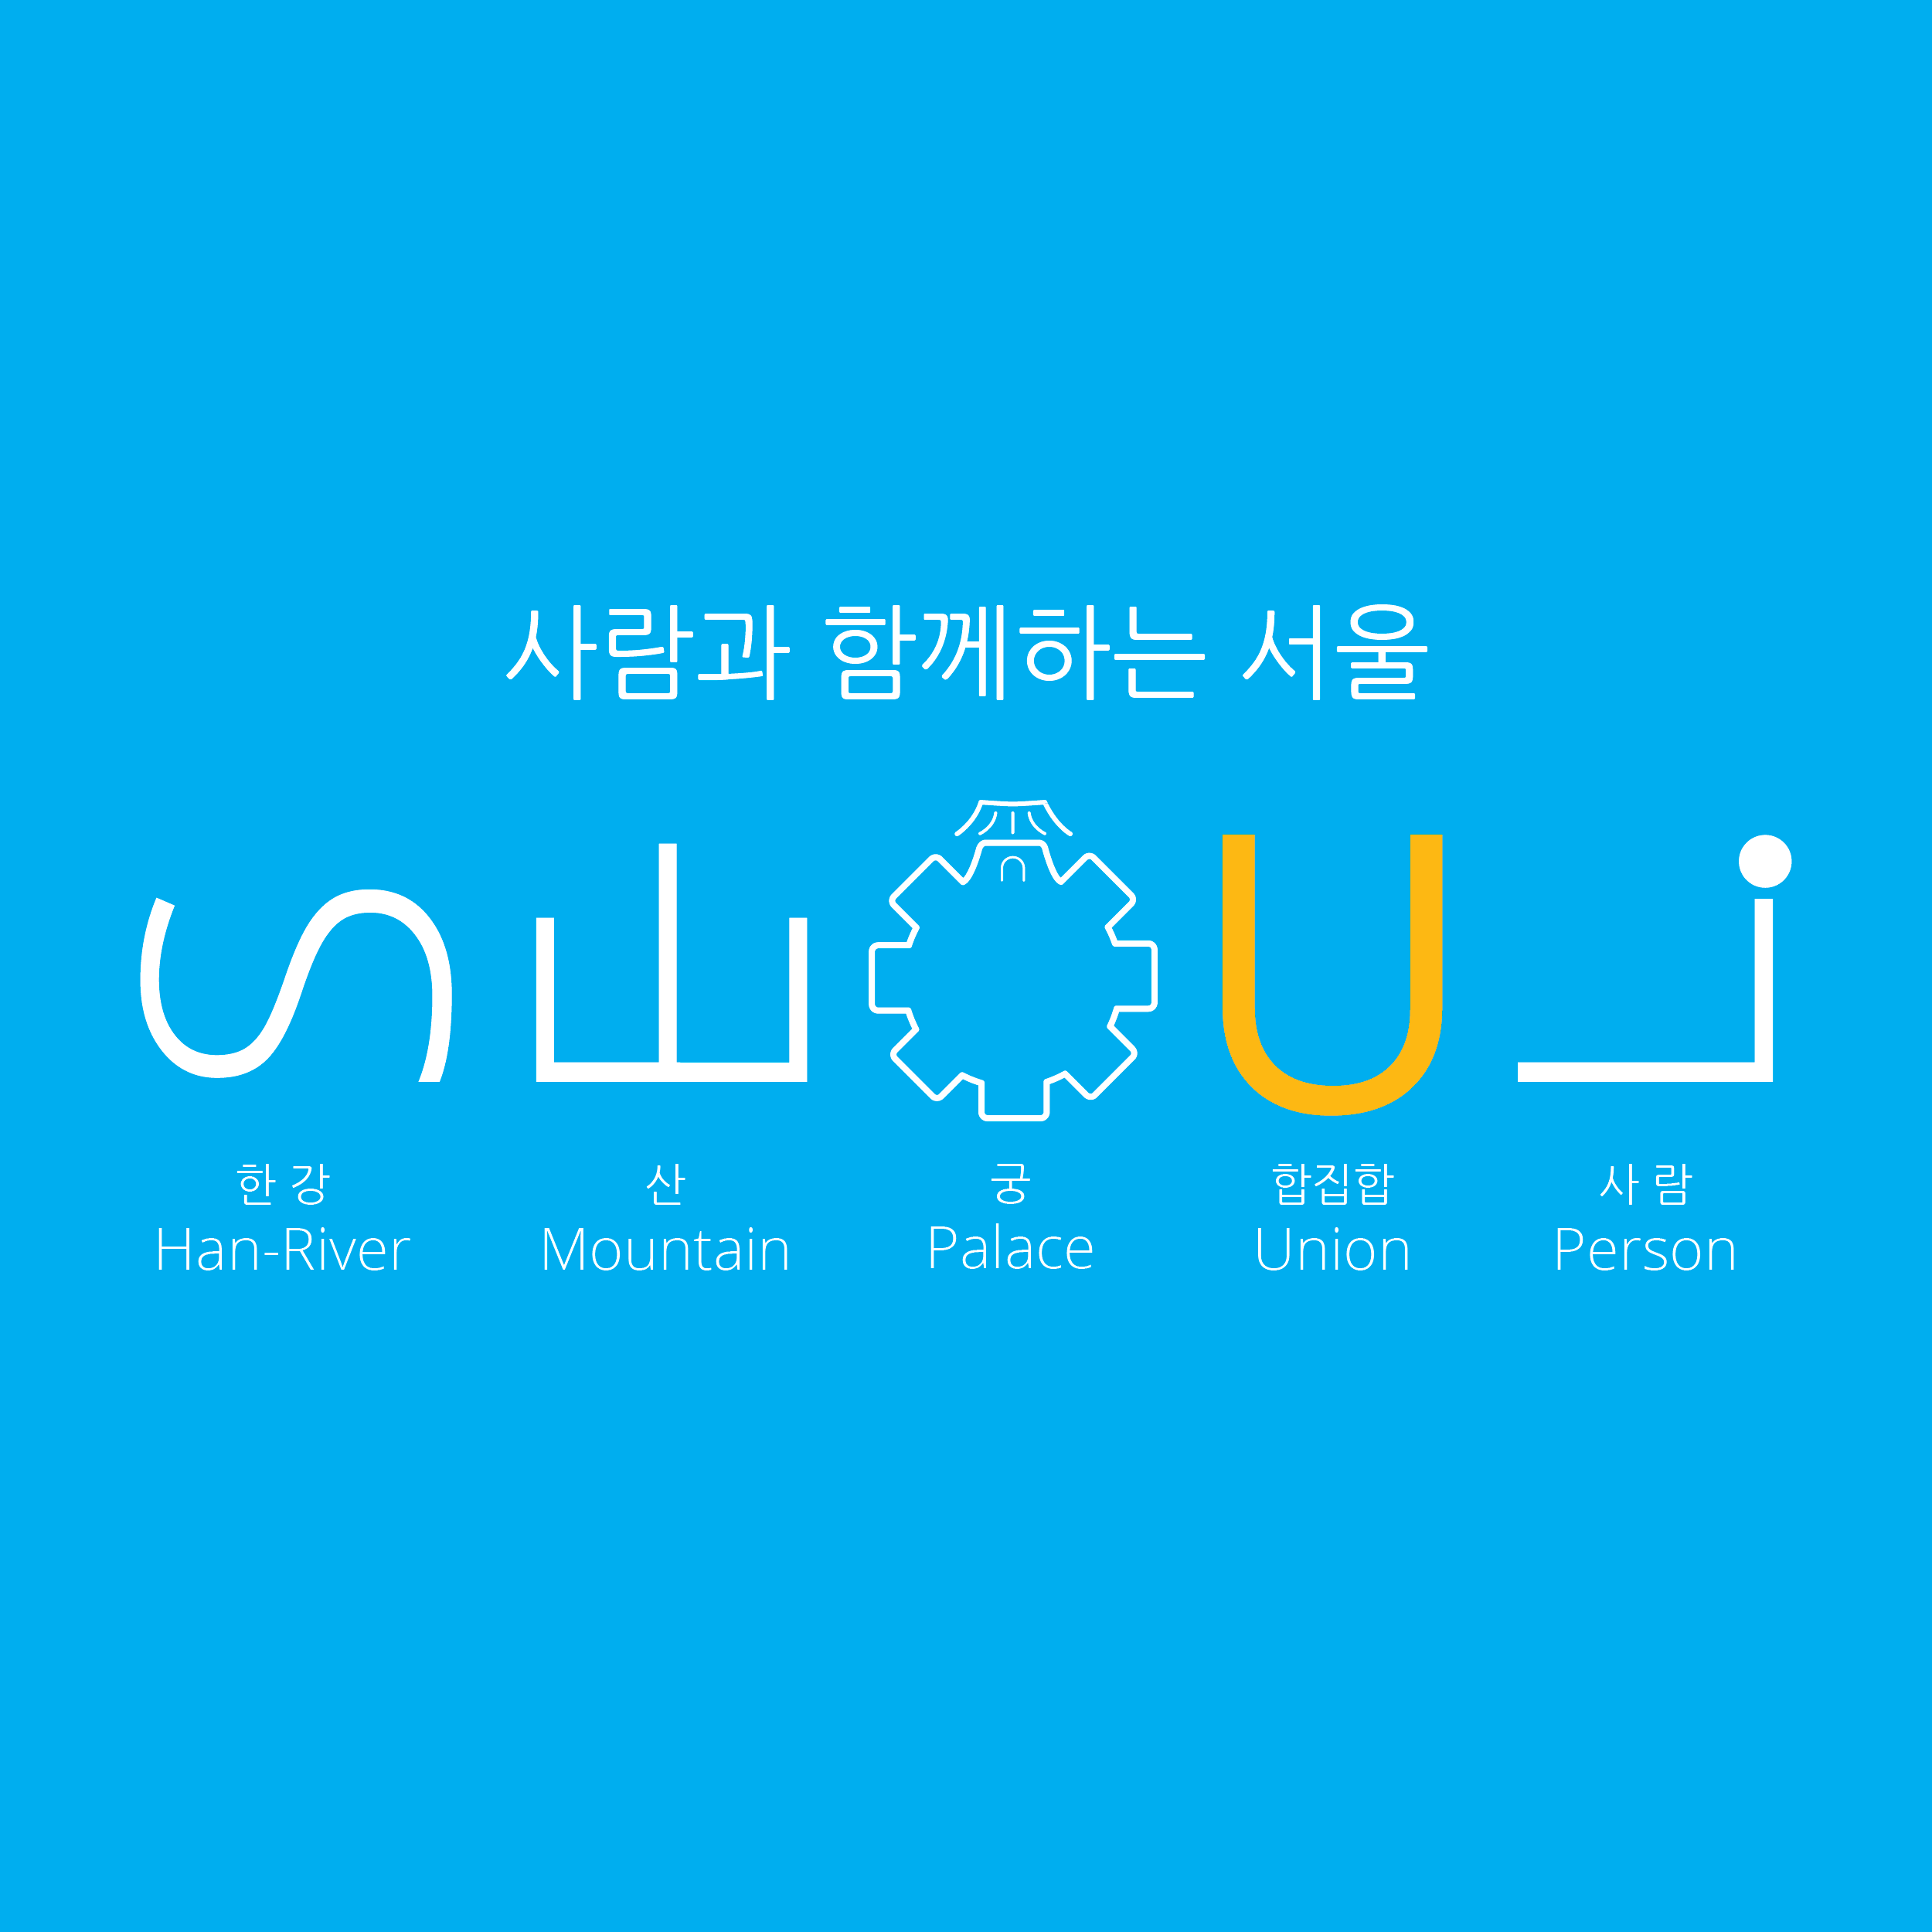 Seoul Typography Contest - JUNG HAK JAE